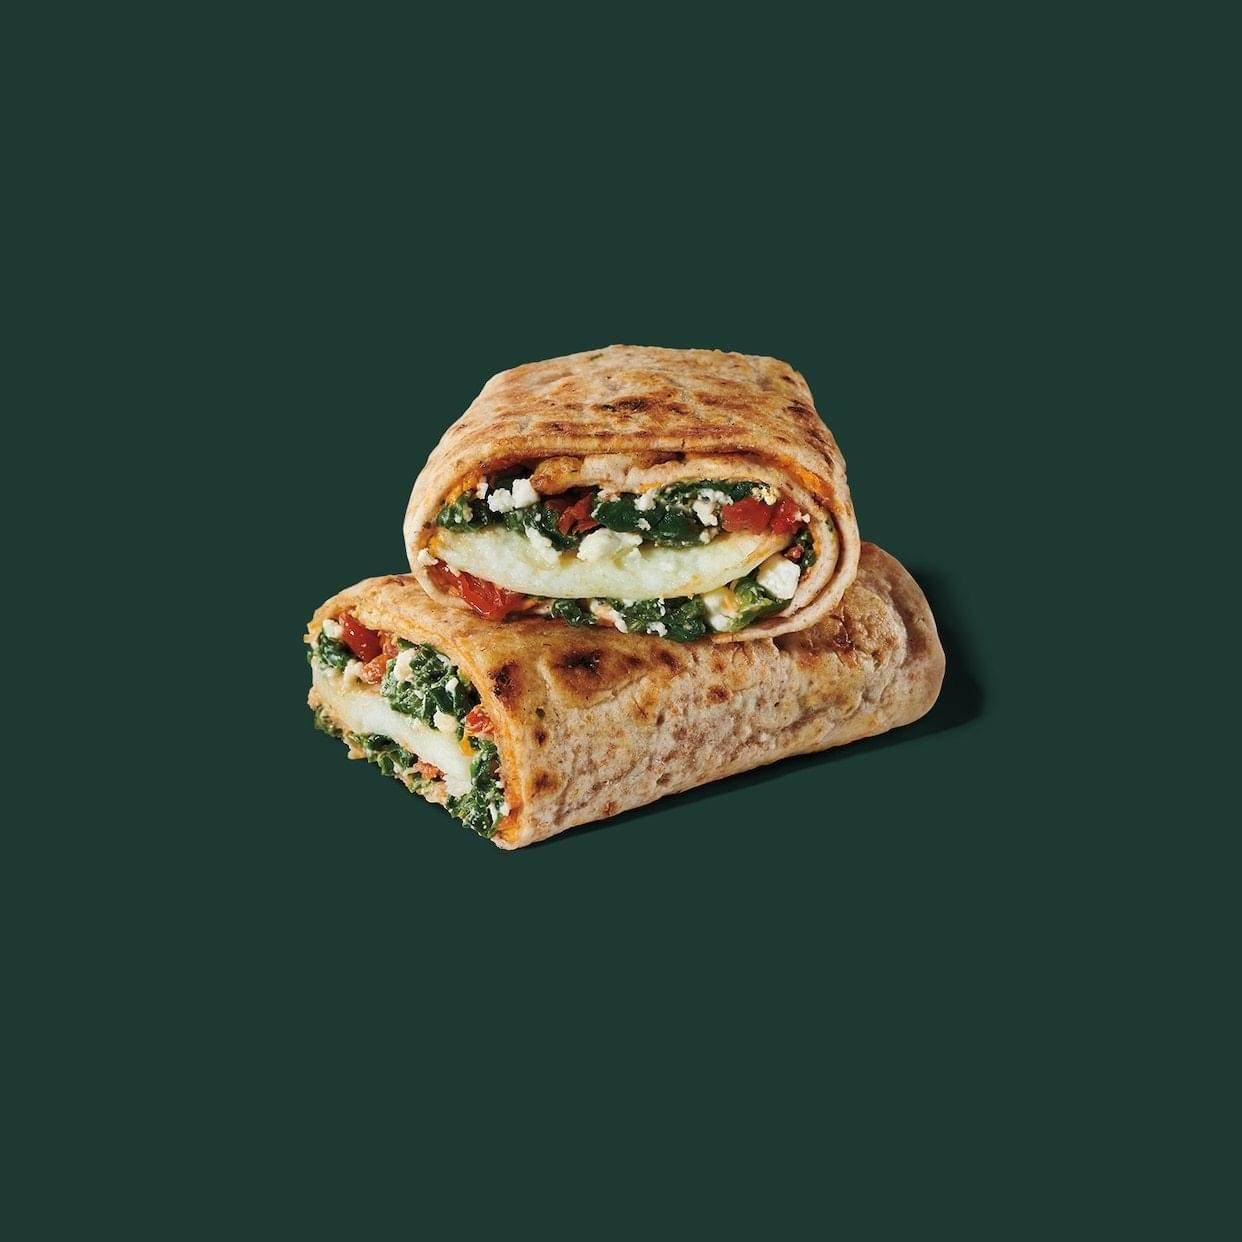 Starbucks Spinach, Feta & Cage Free Egg White Breakfast Wrap Nutrition Facts